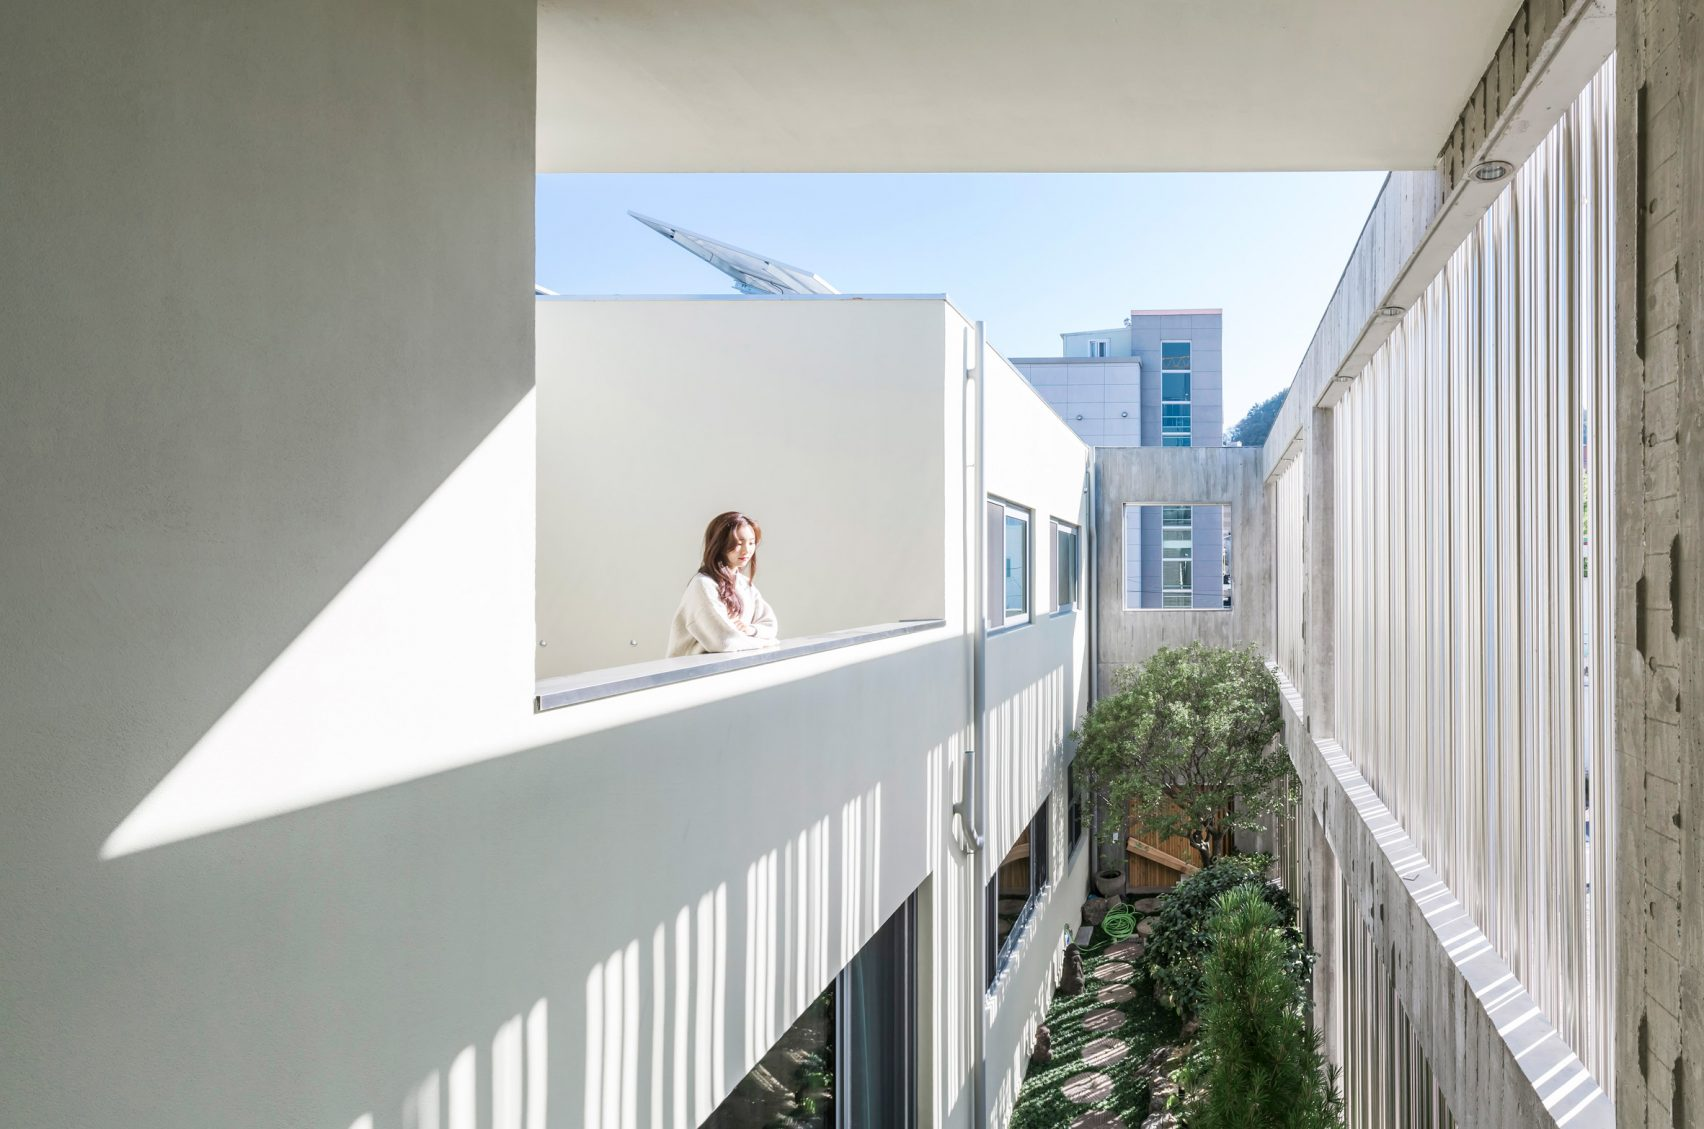 steel-grove-augmented-reality-architecture-residential-south-korea-courtyards-steel_dezeen_2364_col_17-1704x1129.jpg